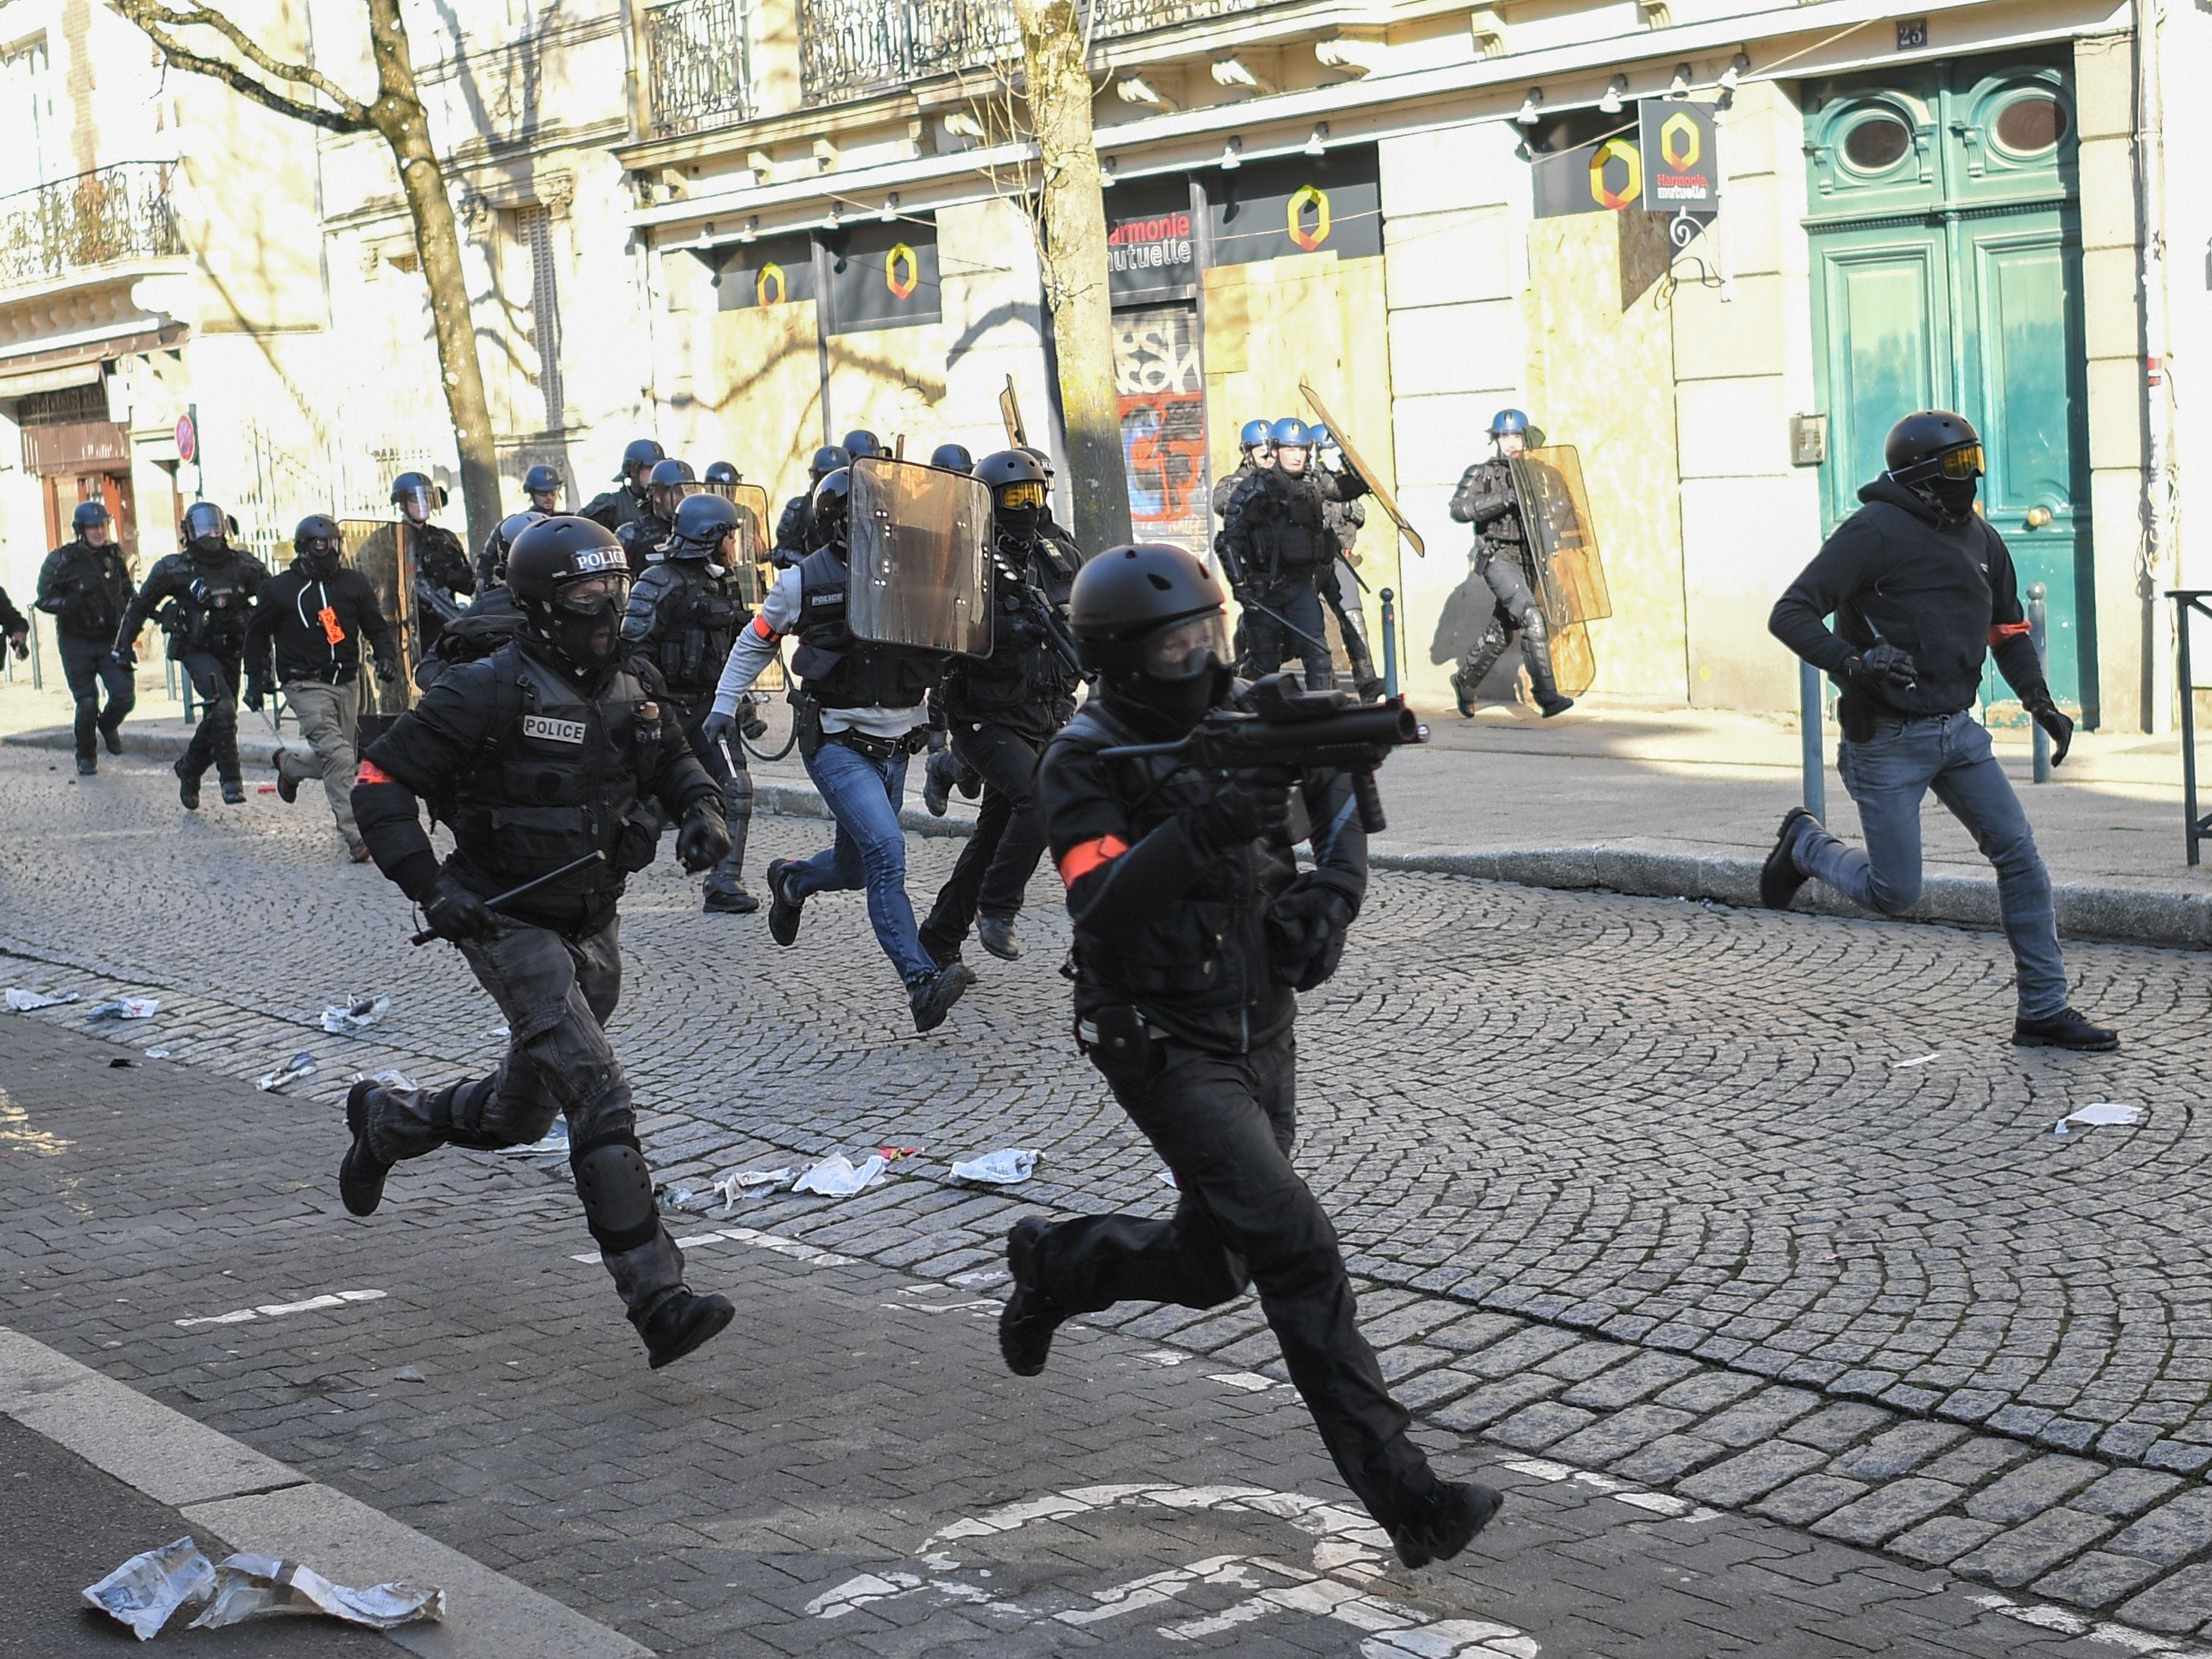 French police run down a street as members of the yellow vest (gilet jaune) take part in the 15th consecutive Saturday of demonstrations in Rennes, western France on February 23, 2019.